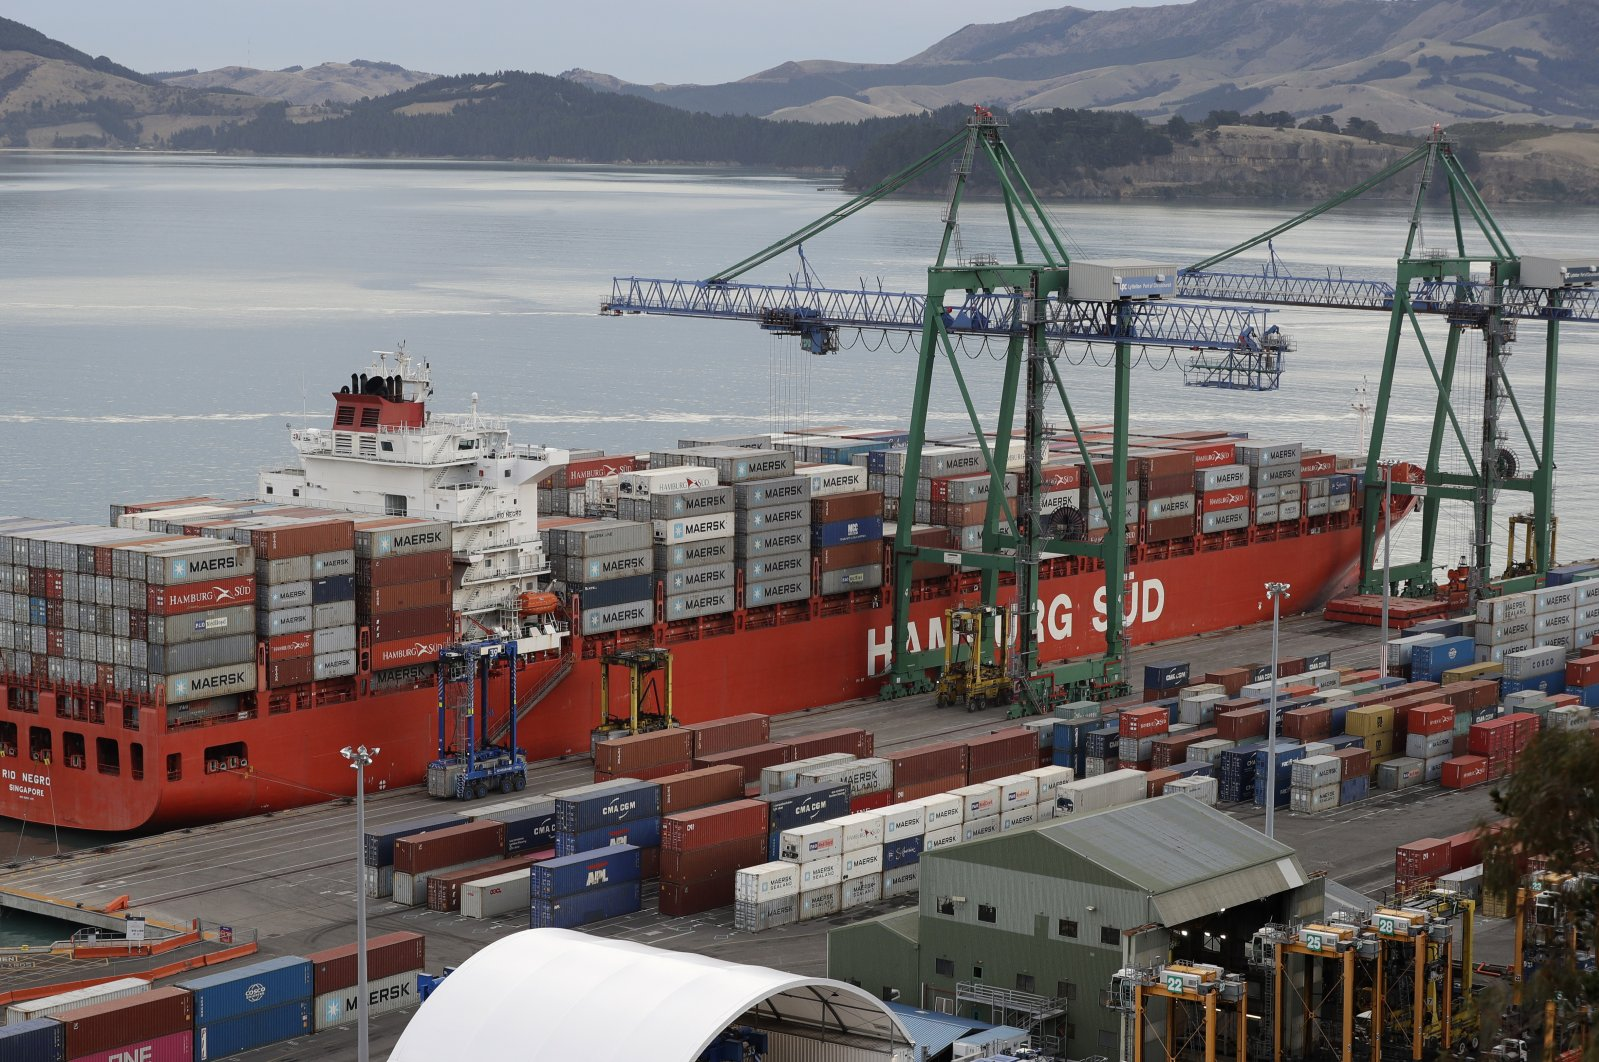 Containers are loaded onto a ship for export at Lyttelton Port near Christchurch, New Zealand, June 3, 2020. (AP Photo)